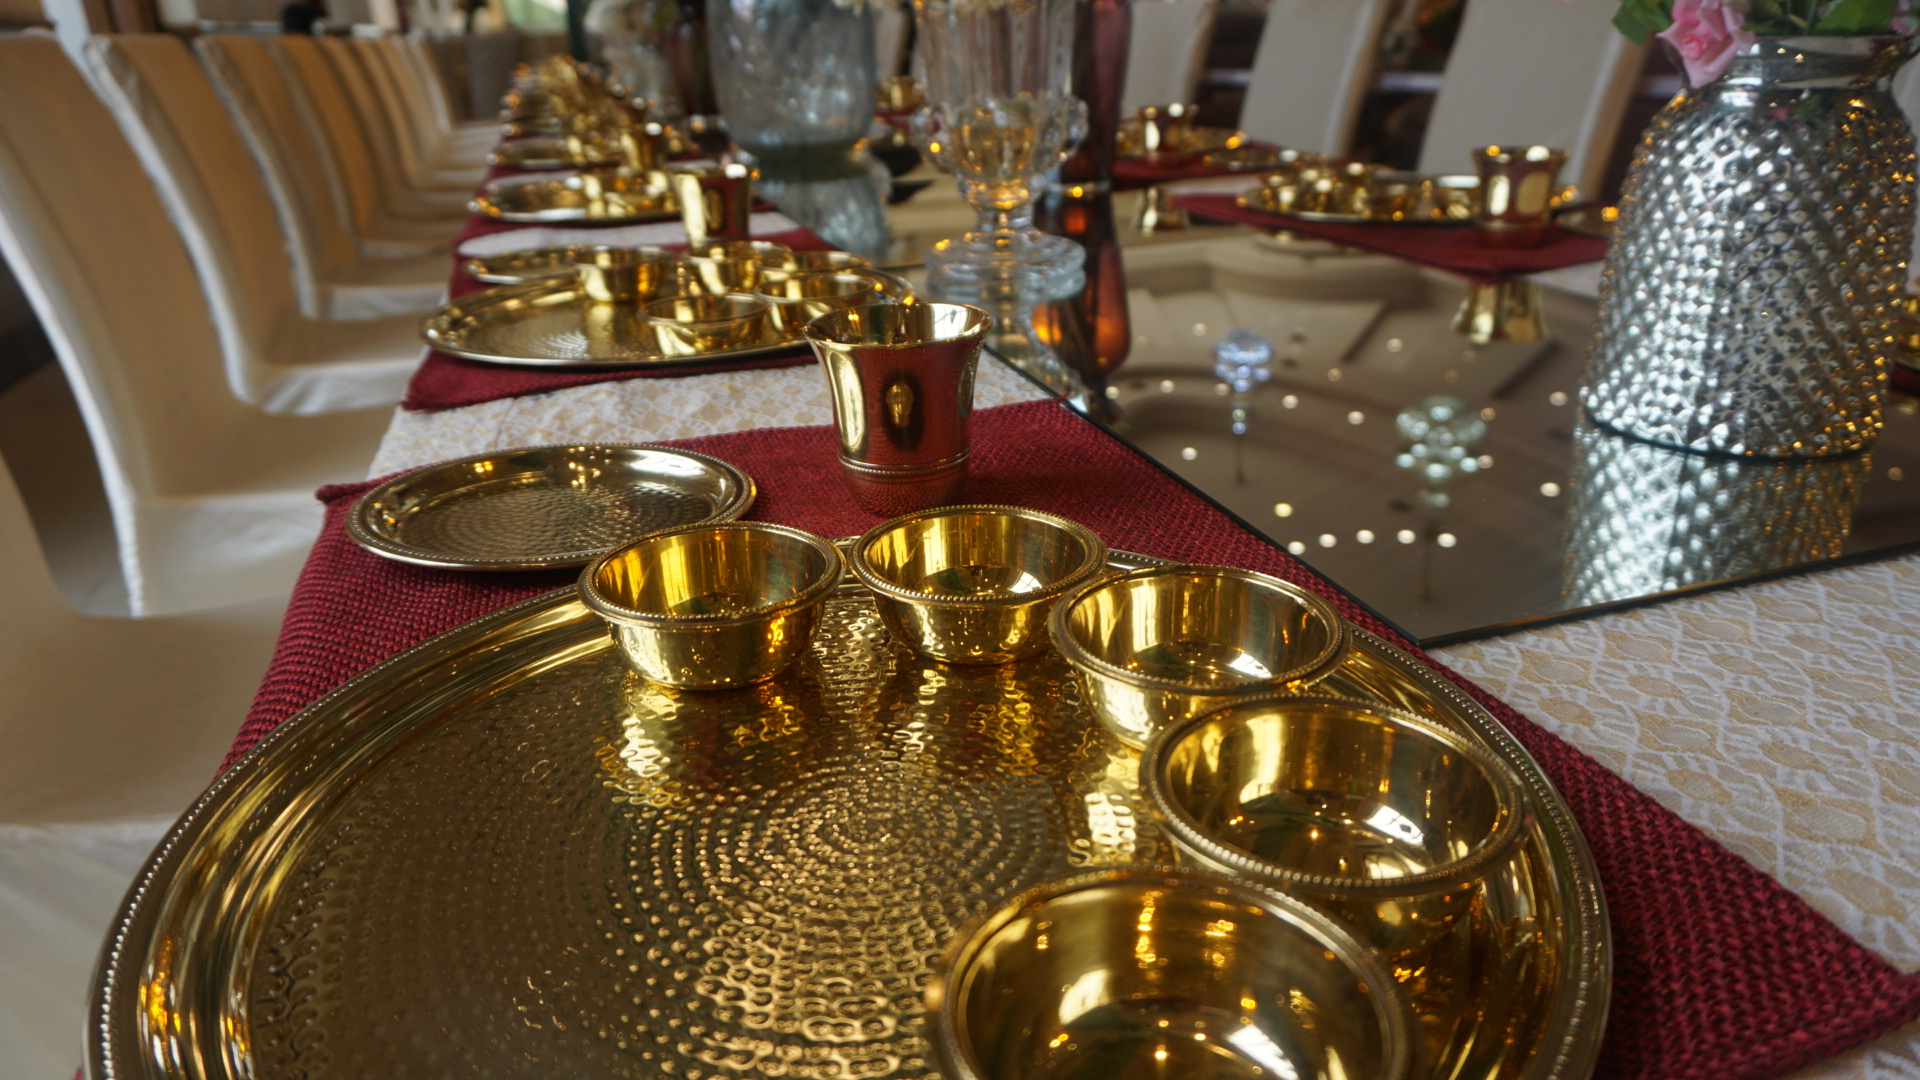 Catering in Chandigarh  | Red Tag Caterers | Best caterers in Chandigarh, vegetarian catering in Chandigarh, top caterer in Chandigarh, perfect catering service in Chandigarh,  - GL43602